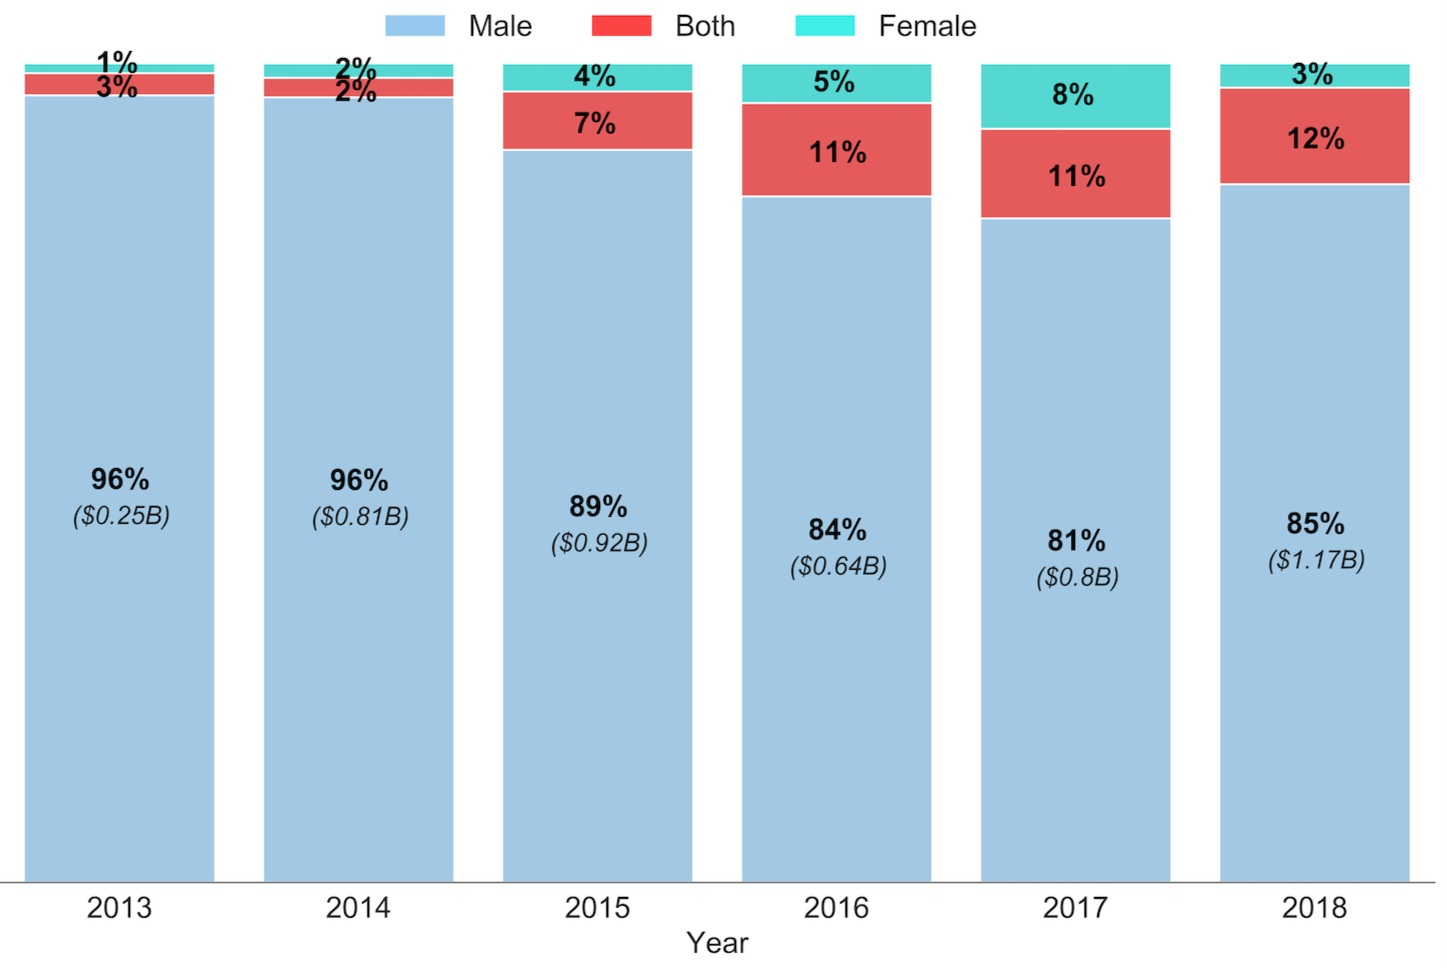 Data & Research - However you slice the data, funding levels to female founders are too low. Dig into our proprietary research here.